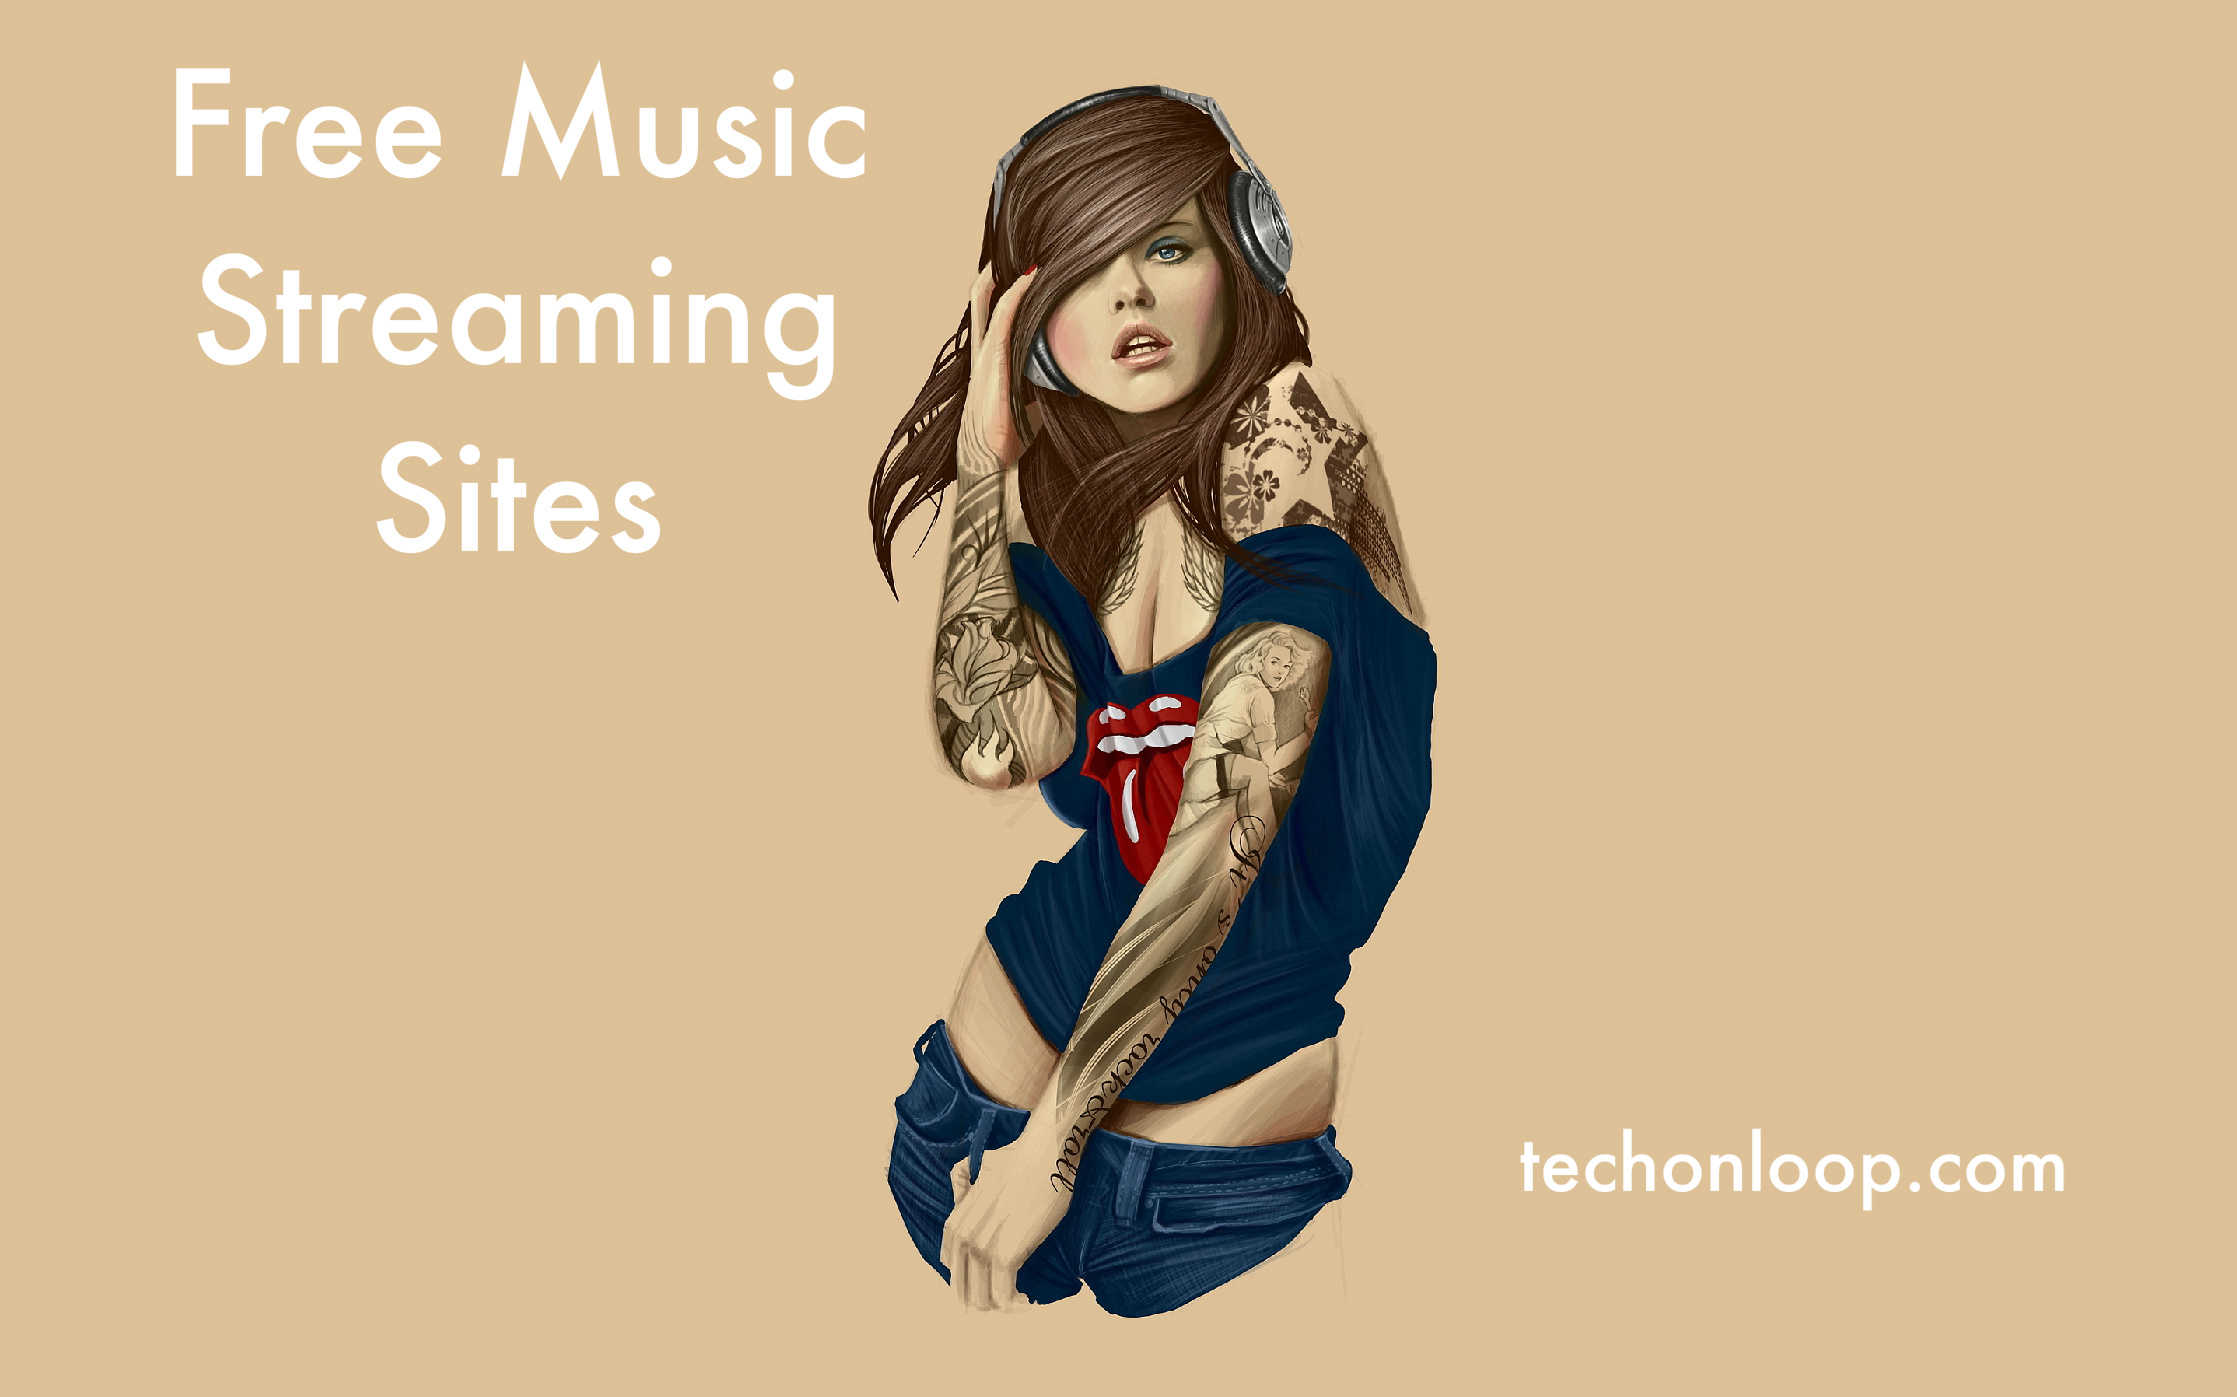 Free Music Streaming Sites, Online Music Stream 2016